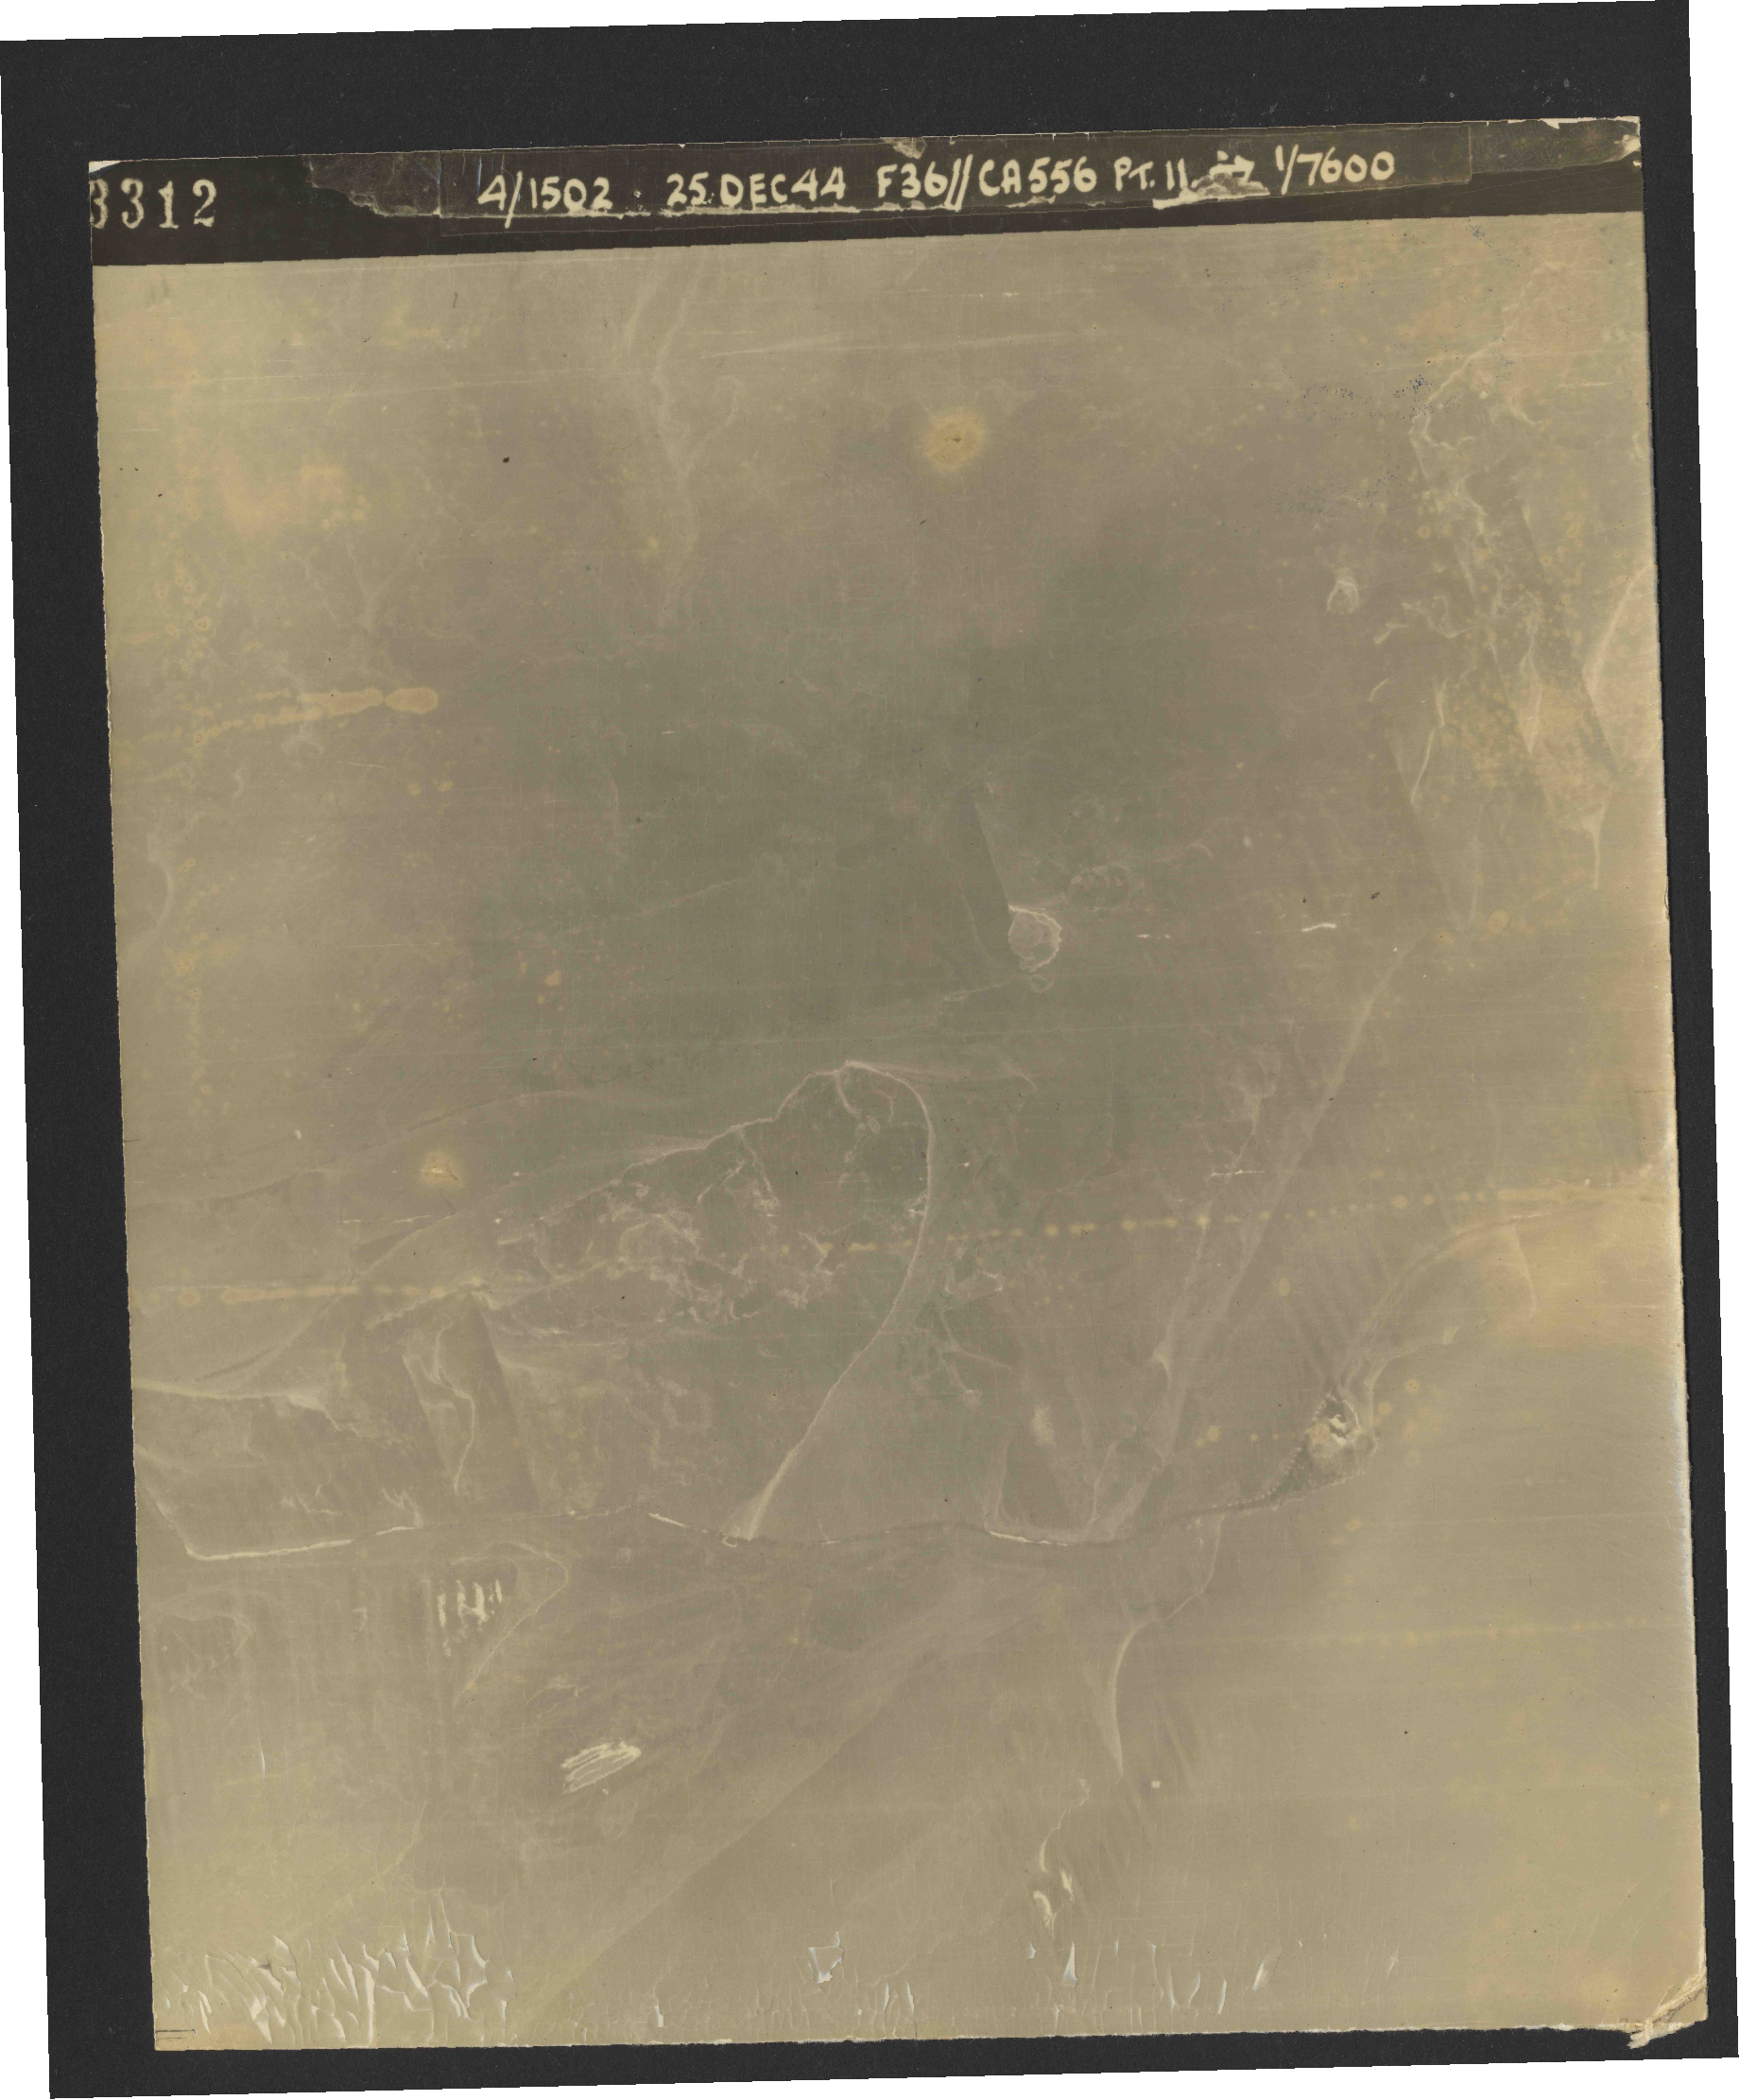 Collection RAF aerial photos 1940-1945 - flight 306, run 10, photo 3312